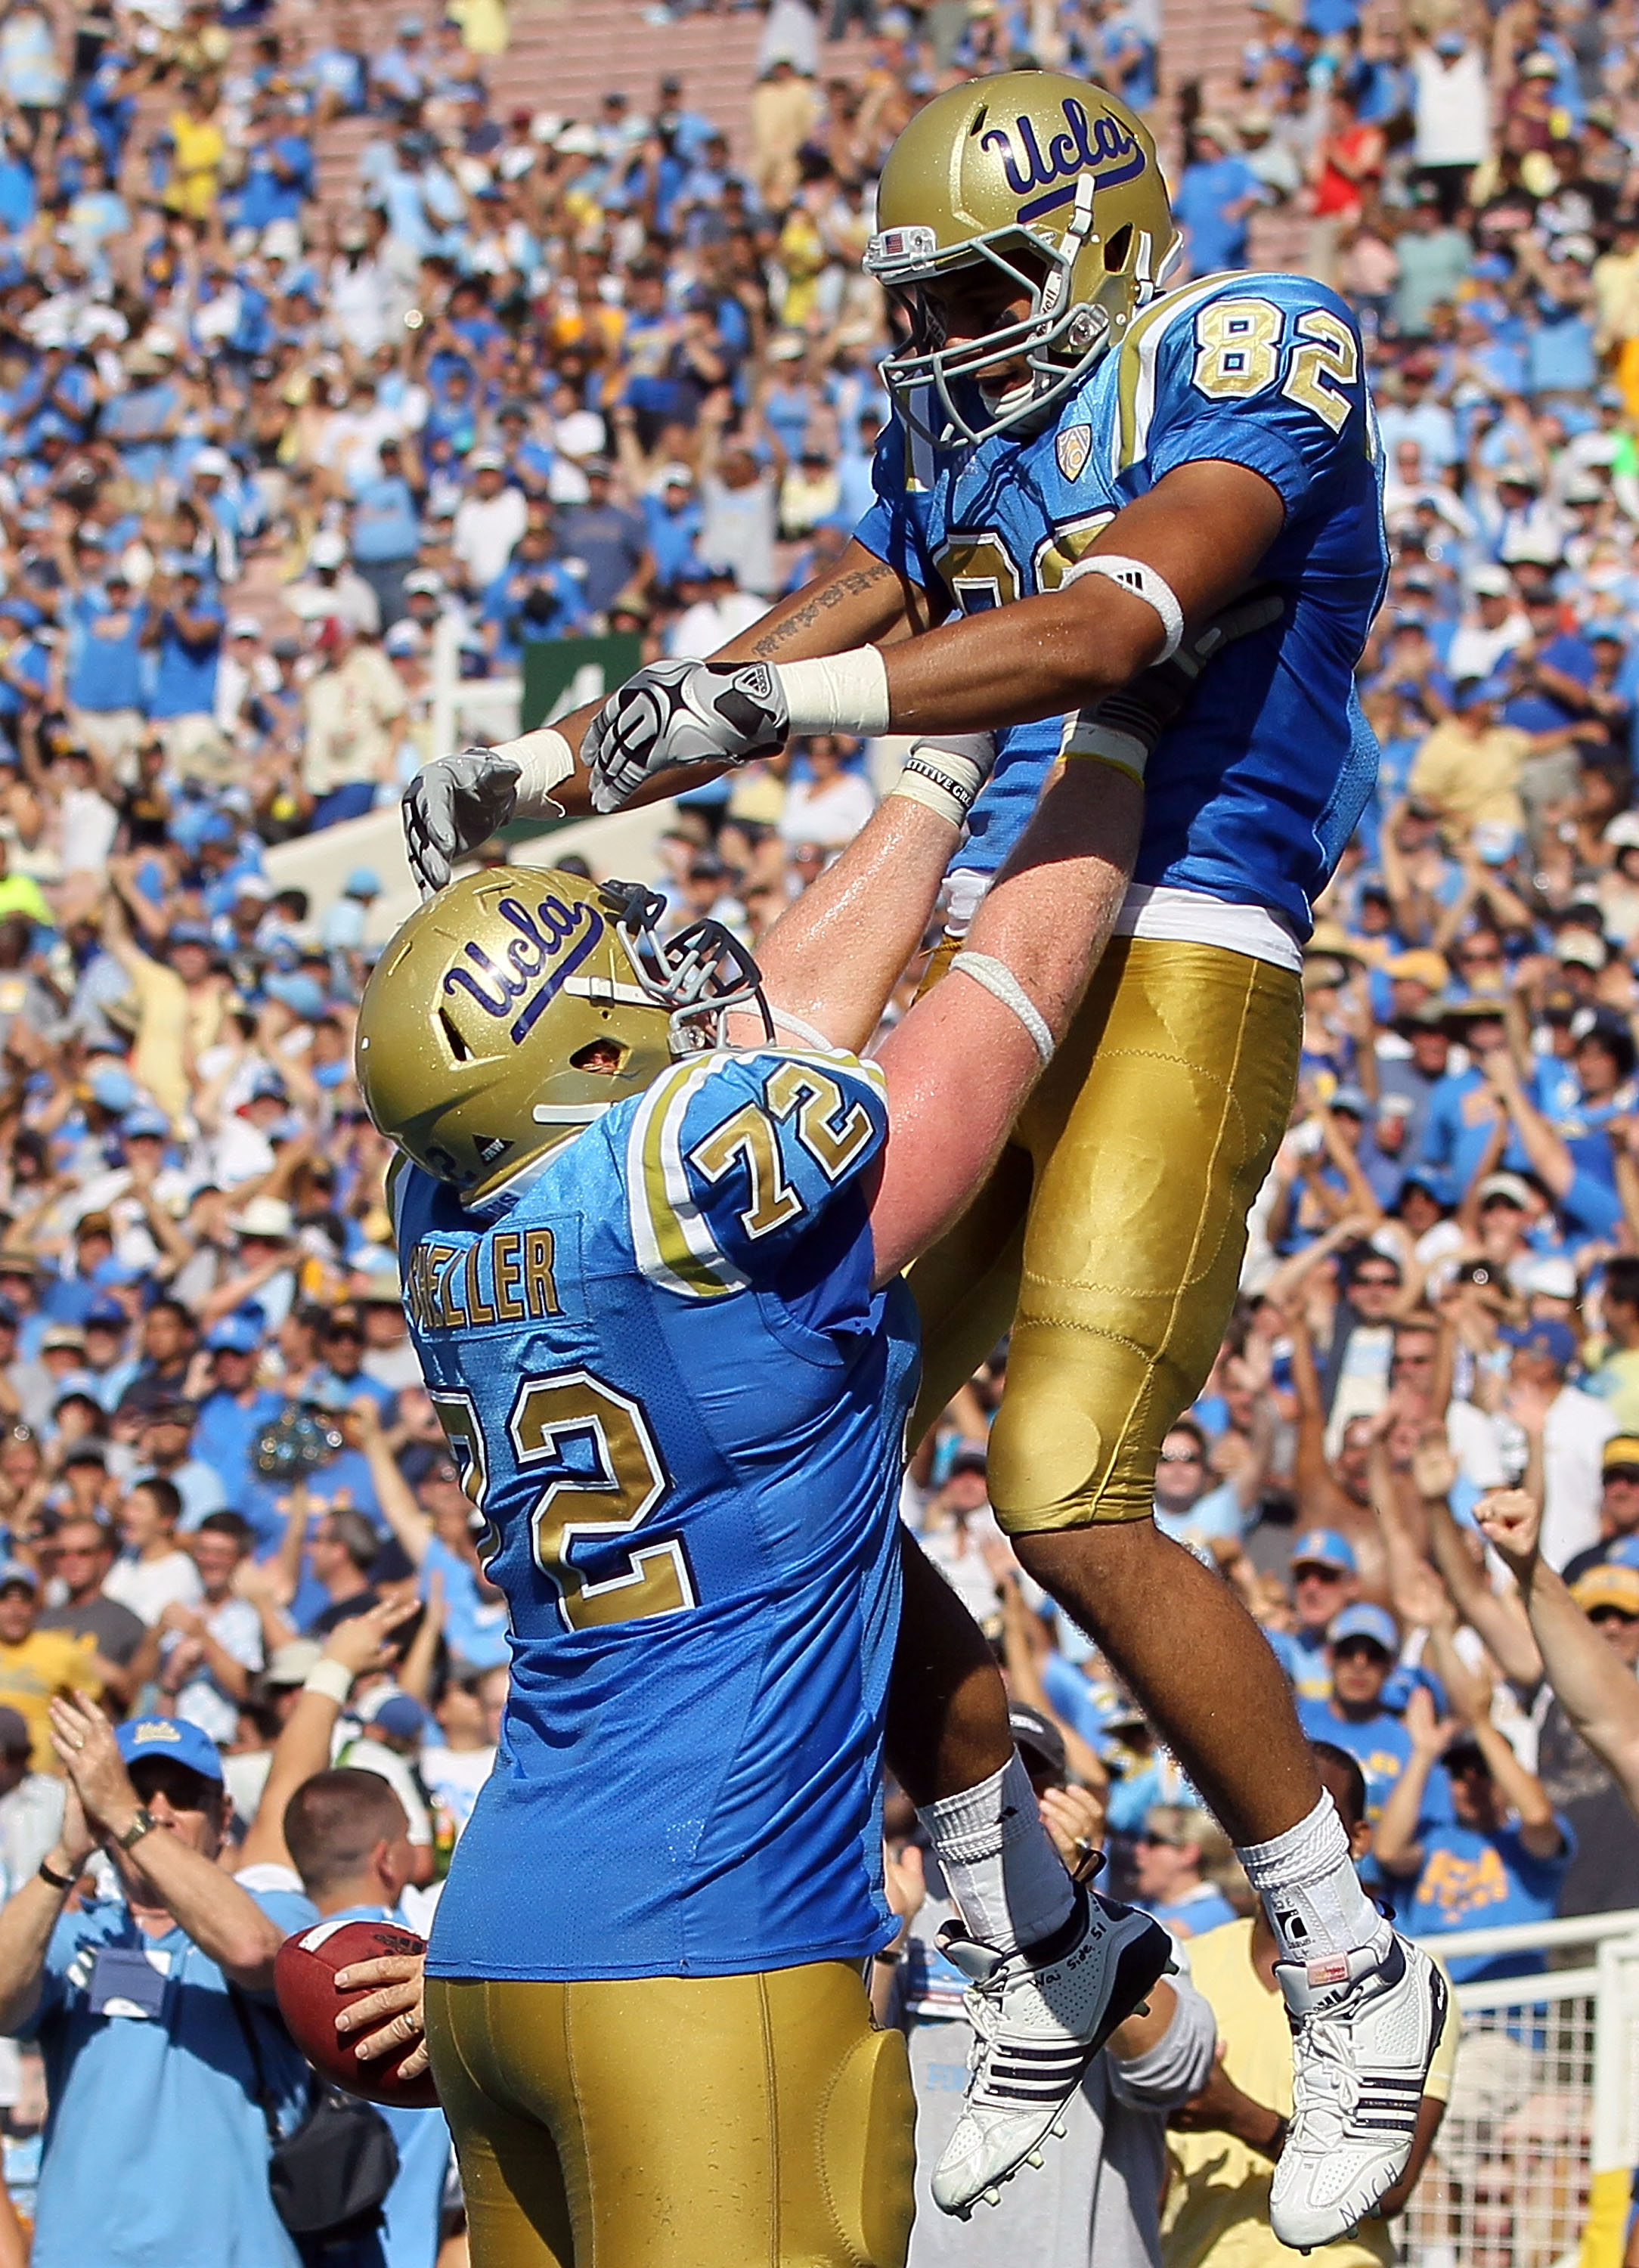 PASADENA, CA - OCTOBER 02:  Taylor Embree #82 and Sean Sheller #72 of the UCLA Bruins celebrate a touchdown against the Washington State Cougars during the game at the Rose Bowl on October 2, 2010 in Pasadena, California. UCLA defeated Washington State 42